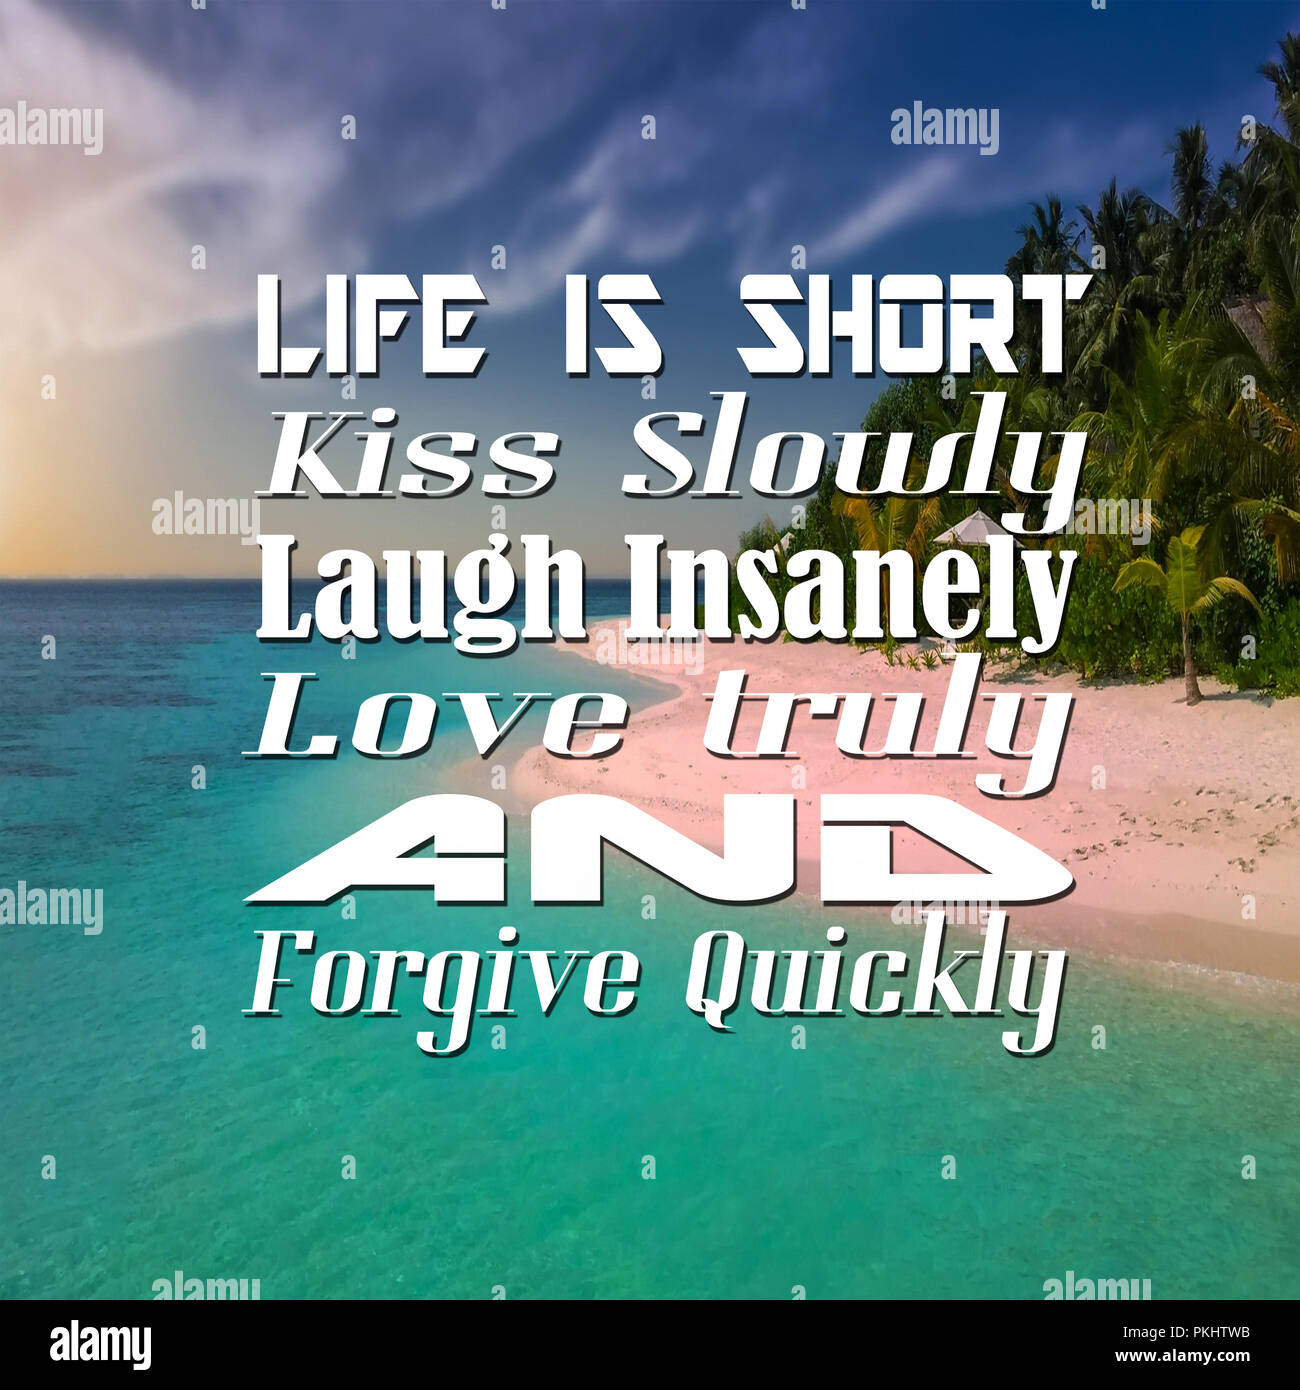 Short Inspirational Quotes About Life: Inspirational Quotes Life Is Short Kiss Slowly Laugh